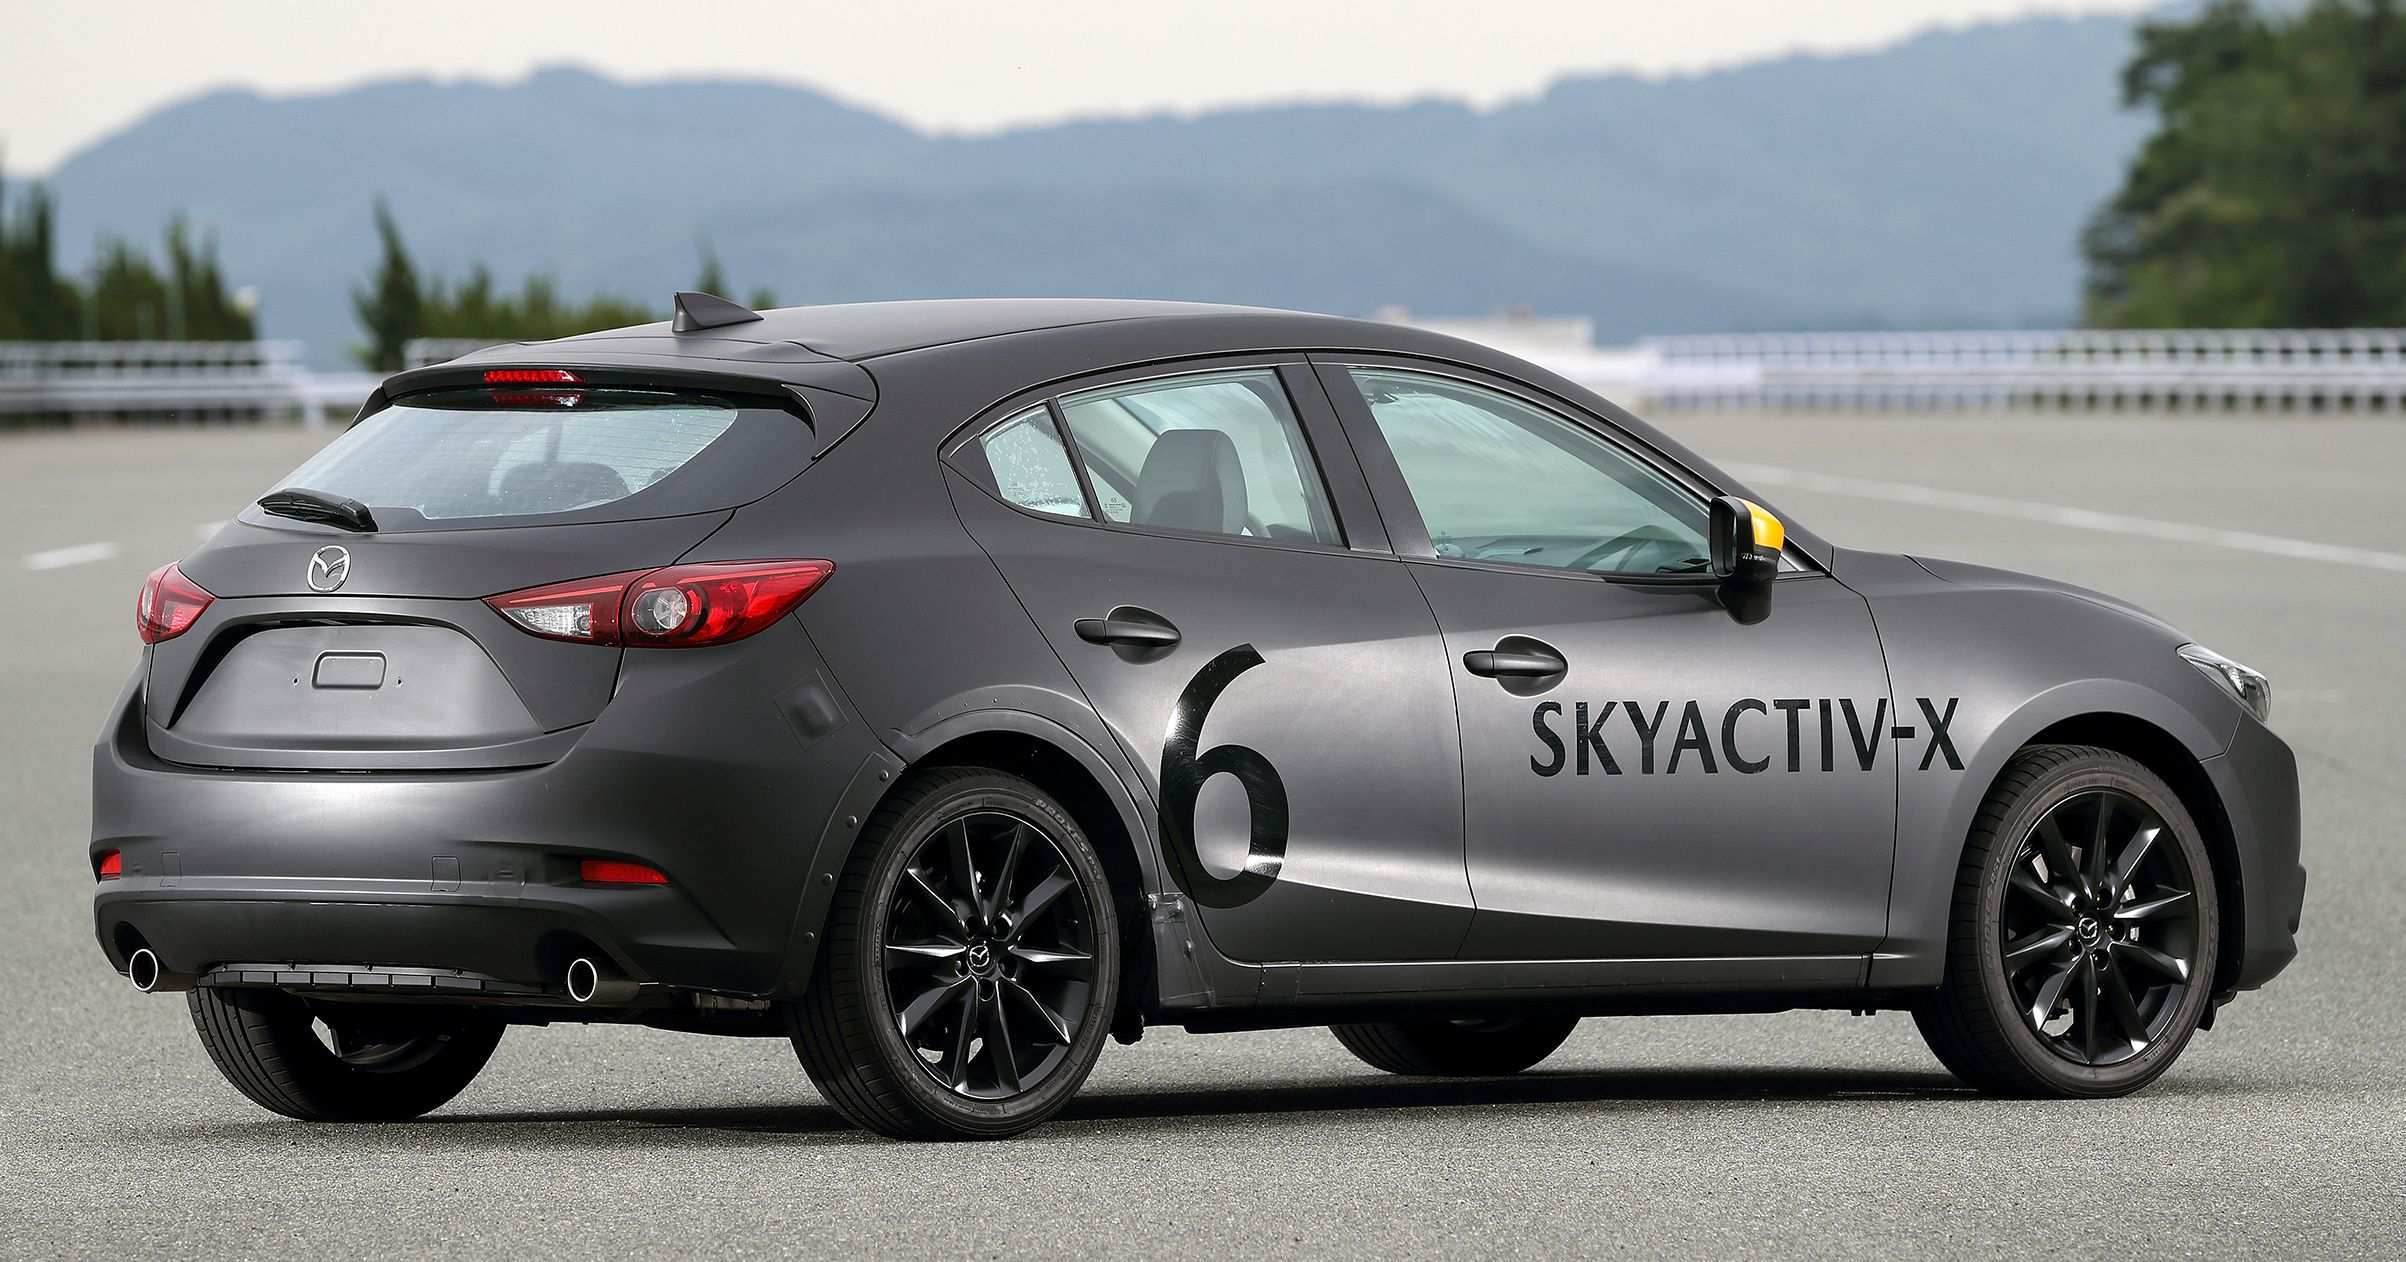 76 The Best Mazda 3 2019 Forum Model